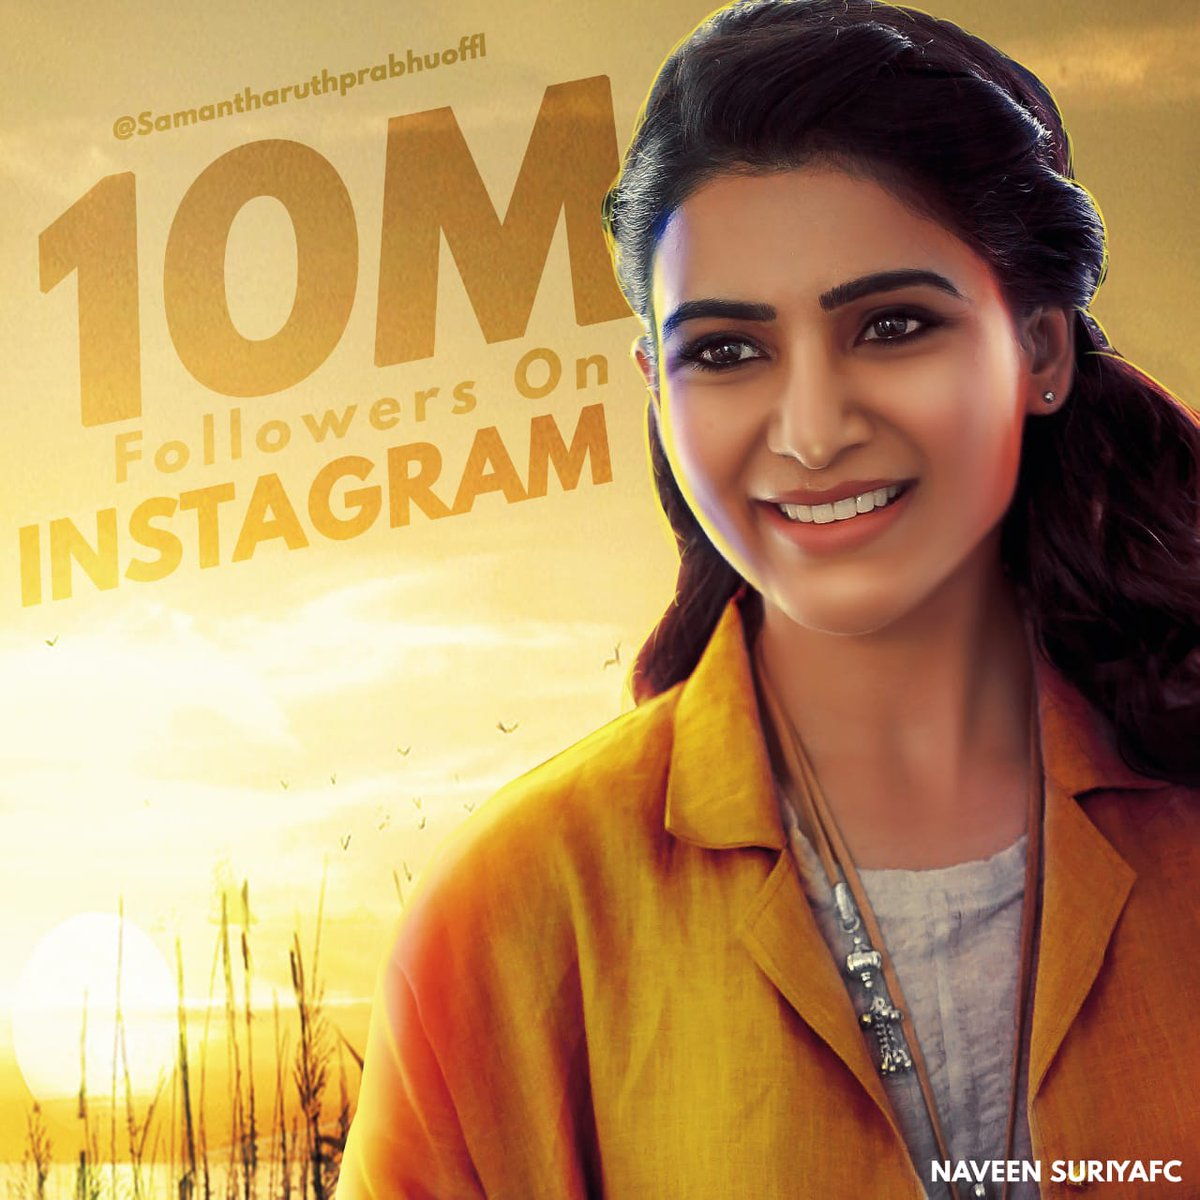 #10MForSamanthaOnInstagram   Congratulations @Samanthaprabhu2 for reaching 10 Million followers on #Instagram pic.twitter.com/Q08RFeVlMw